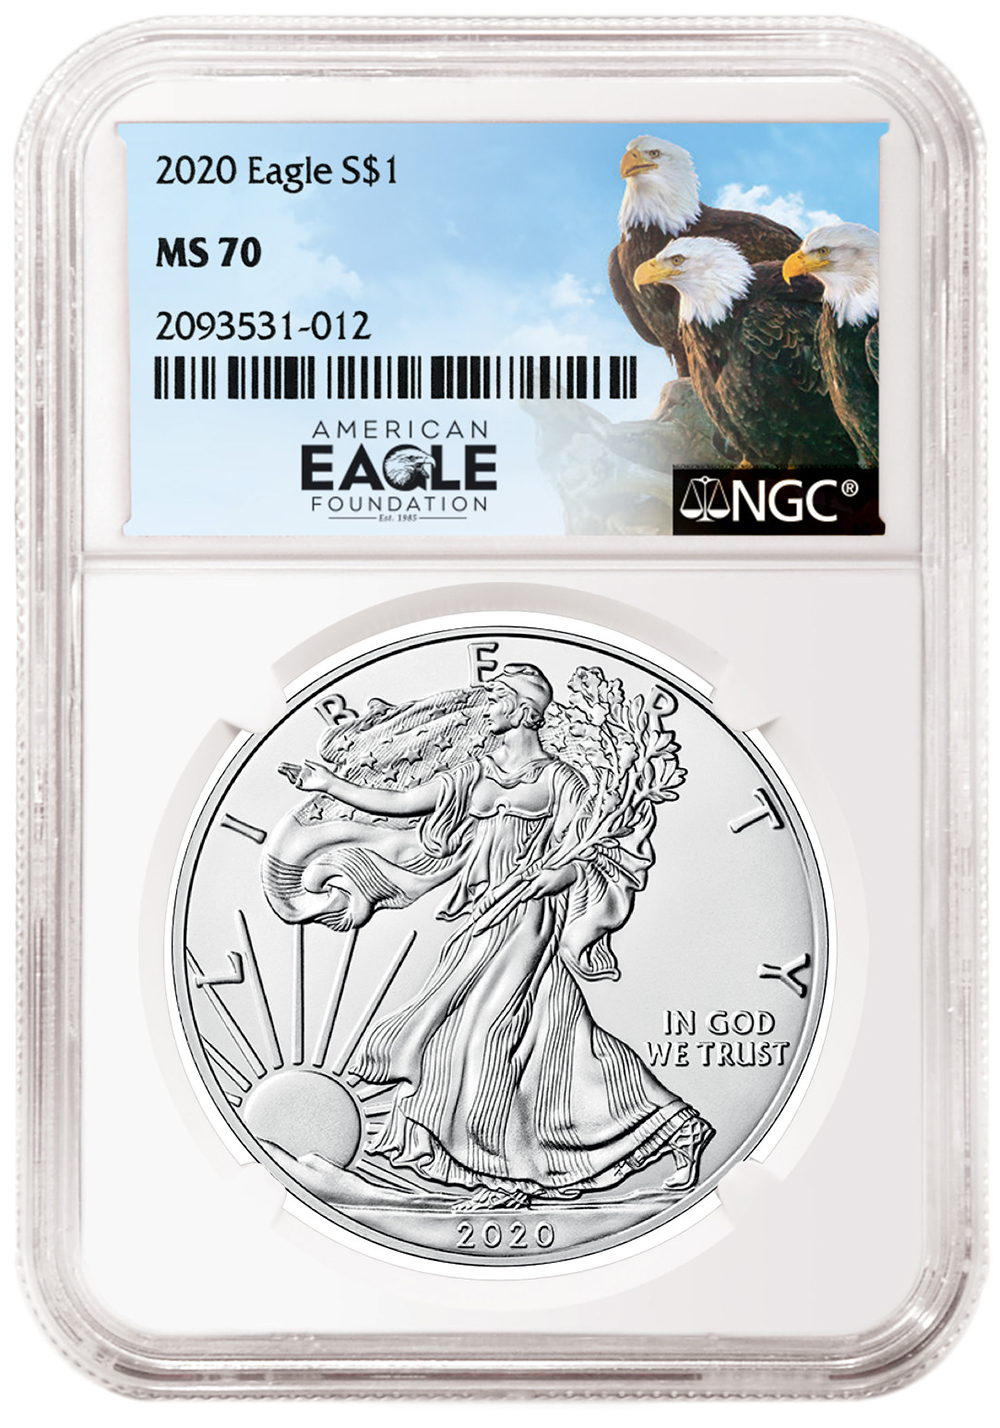 enlarged image for NGC American Eagle Foundation Special Label Honors the Protection and Care of Our National Emblem